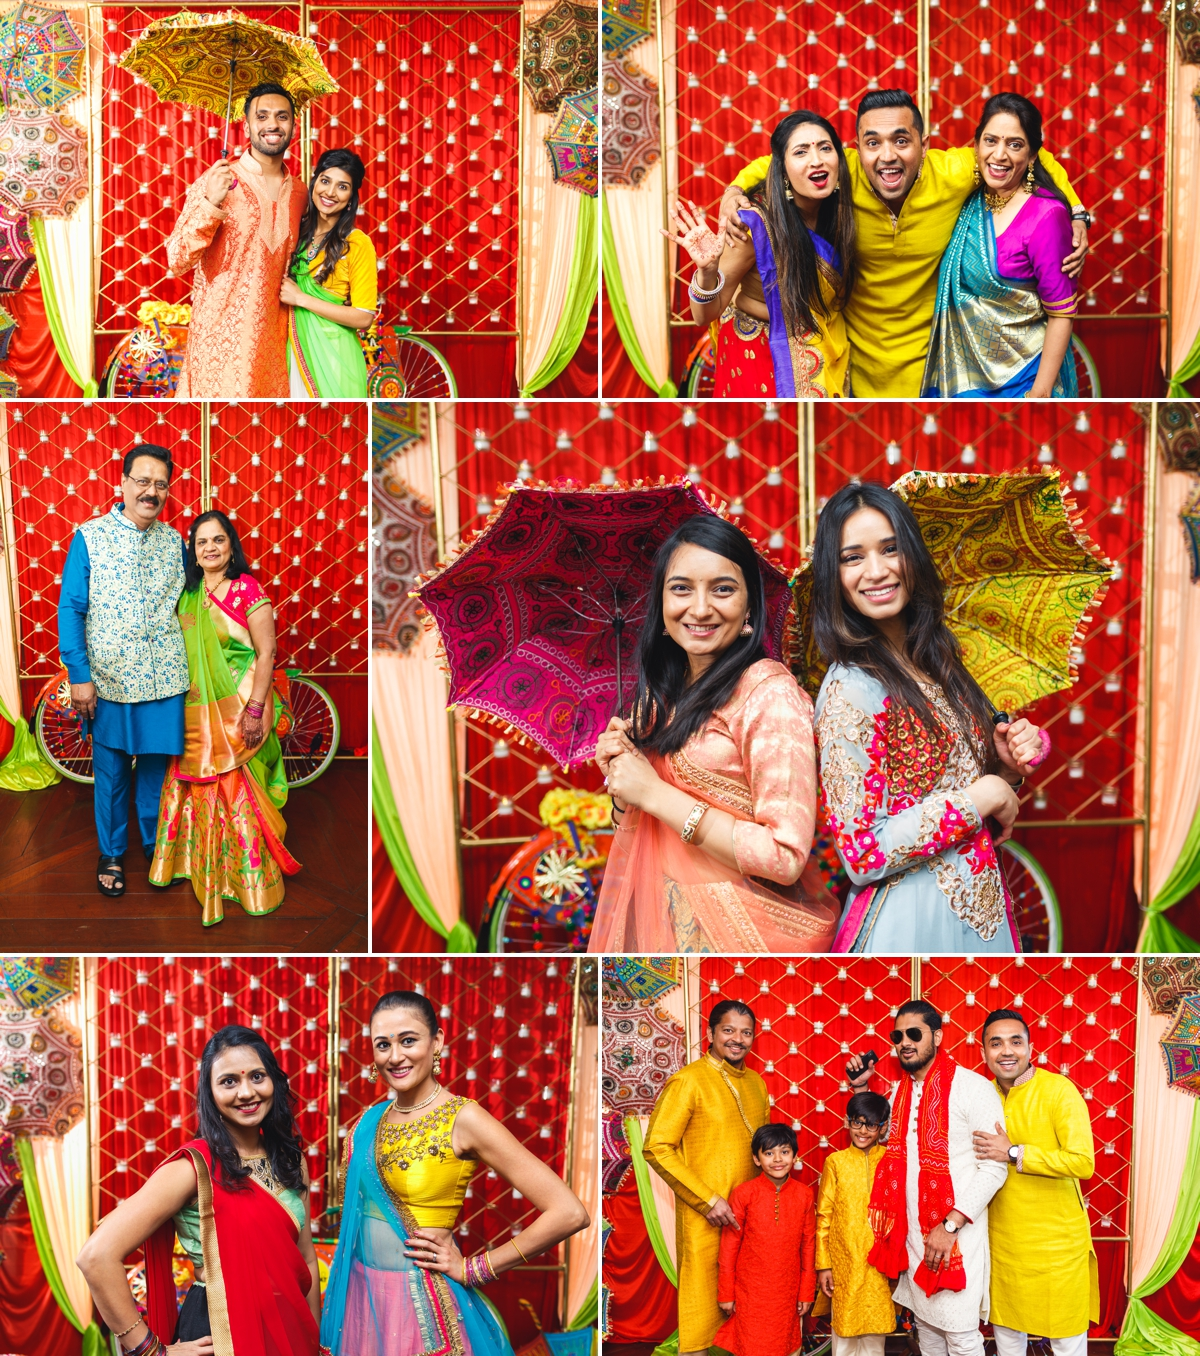 indian-wedding-photo-booth-inspiration-ideas